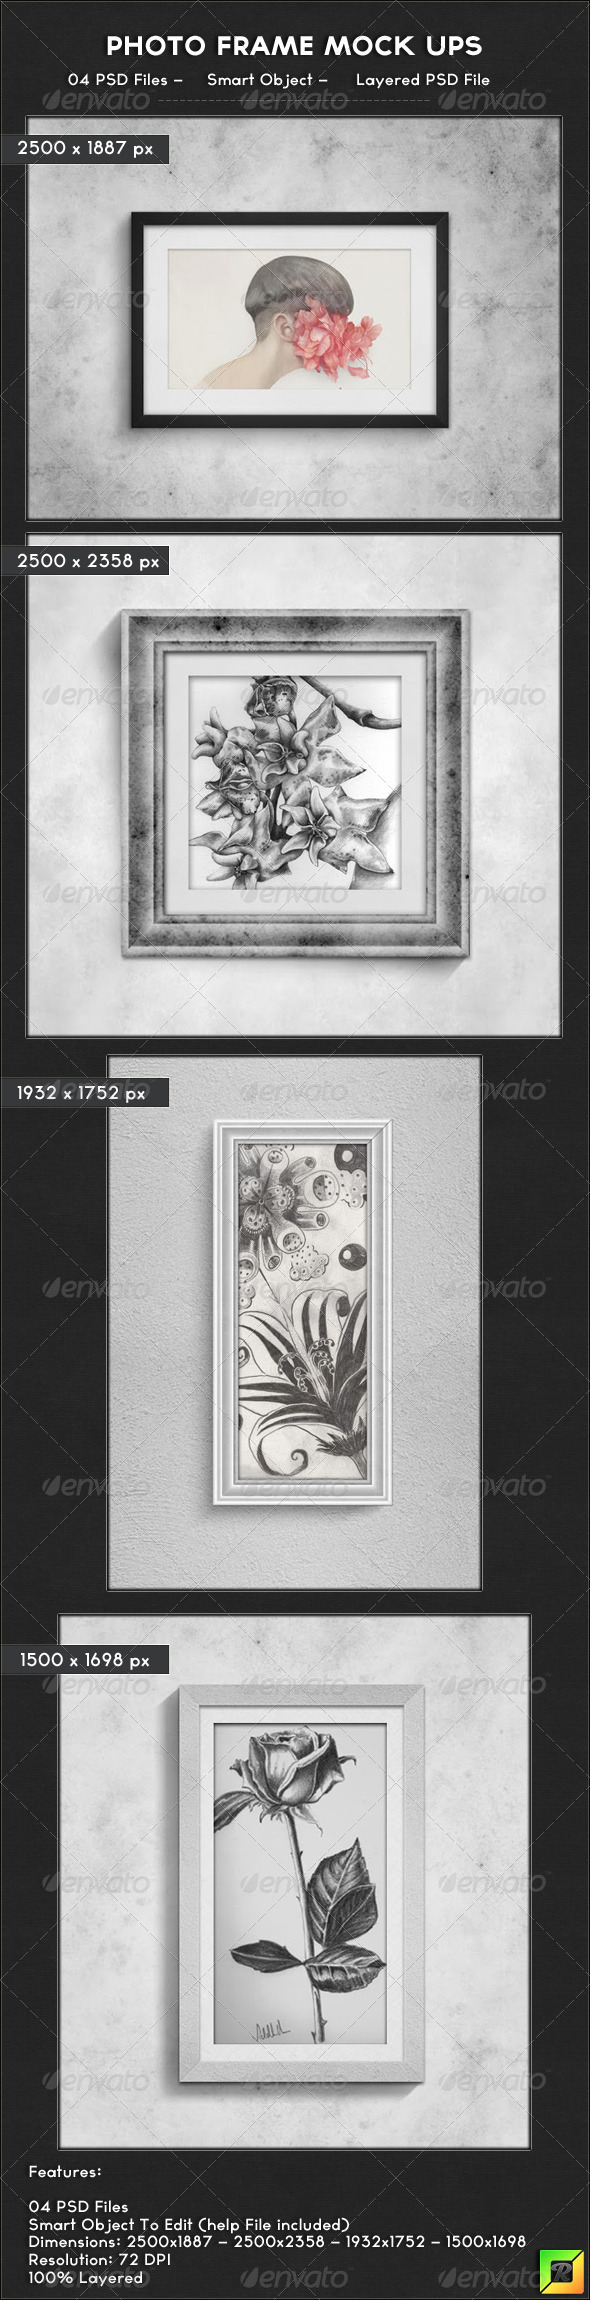 Photo Frame Mock Ups - Photo Templates Graphics